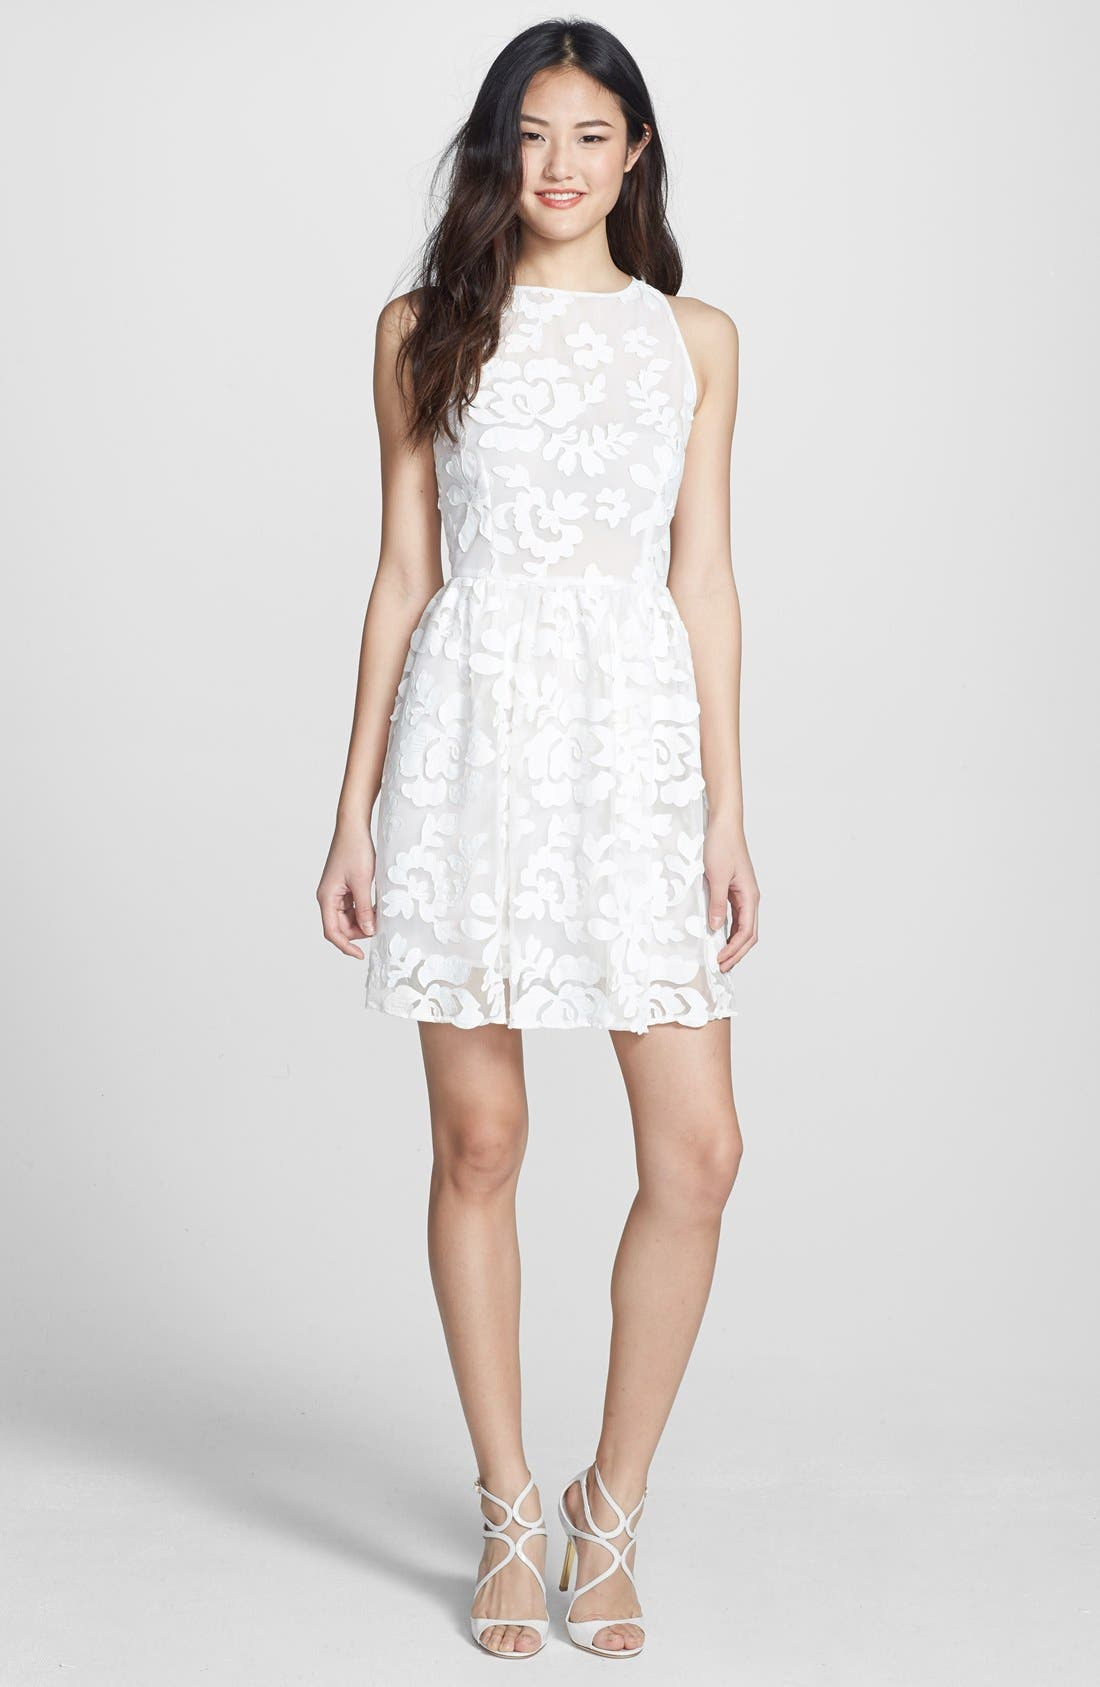 Alternate Image 1 Selected - BB Dakota 'Sibley' Faux Leather Appliqué Fit & Flare Dress